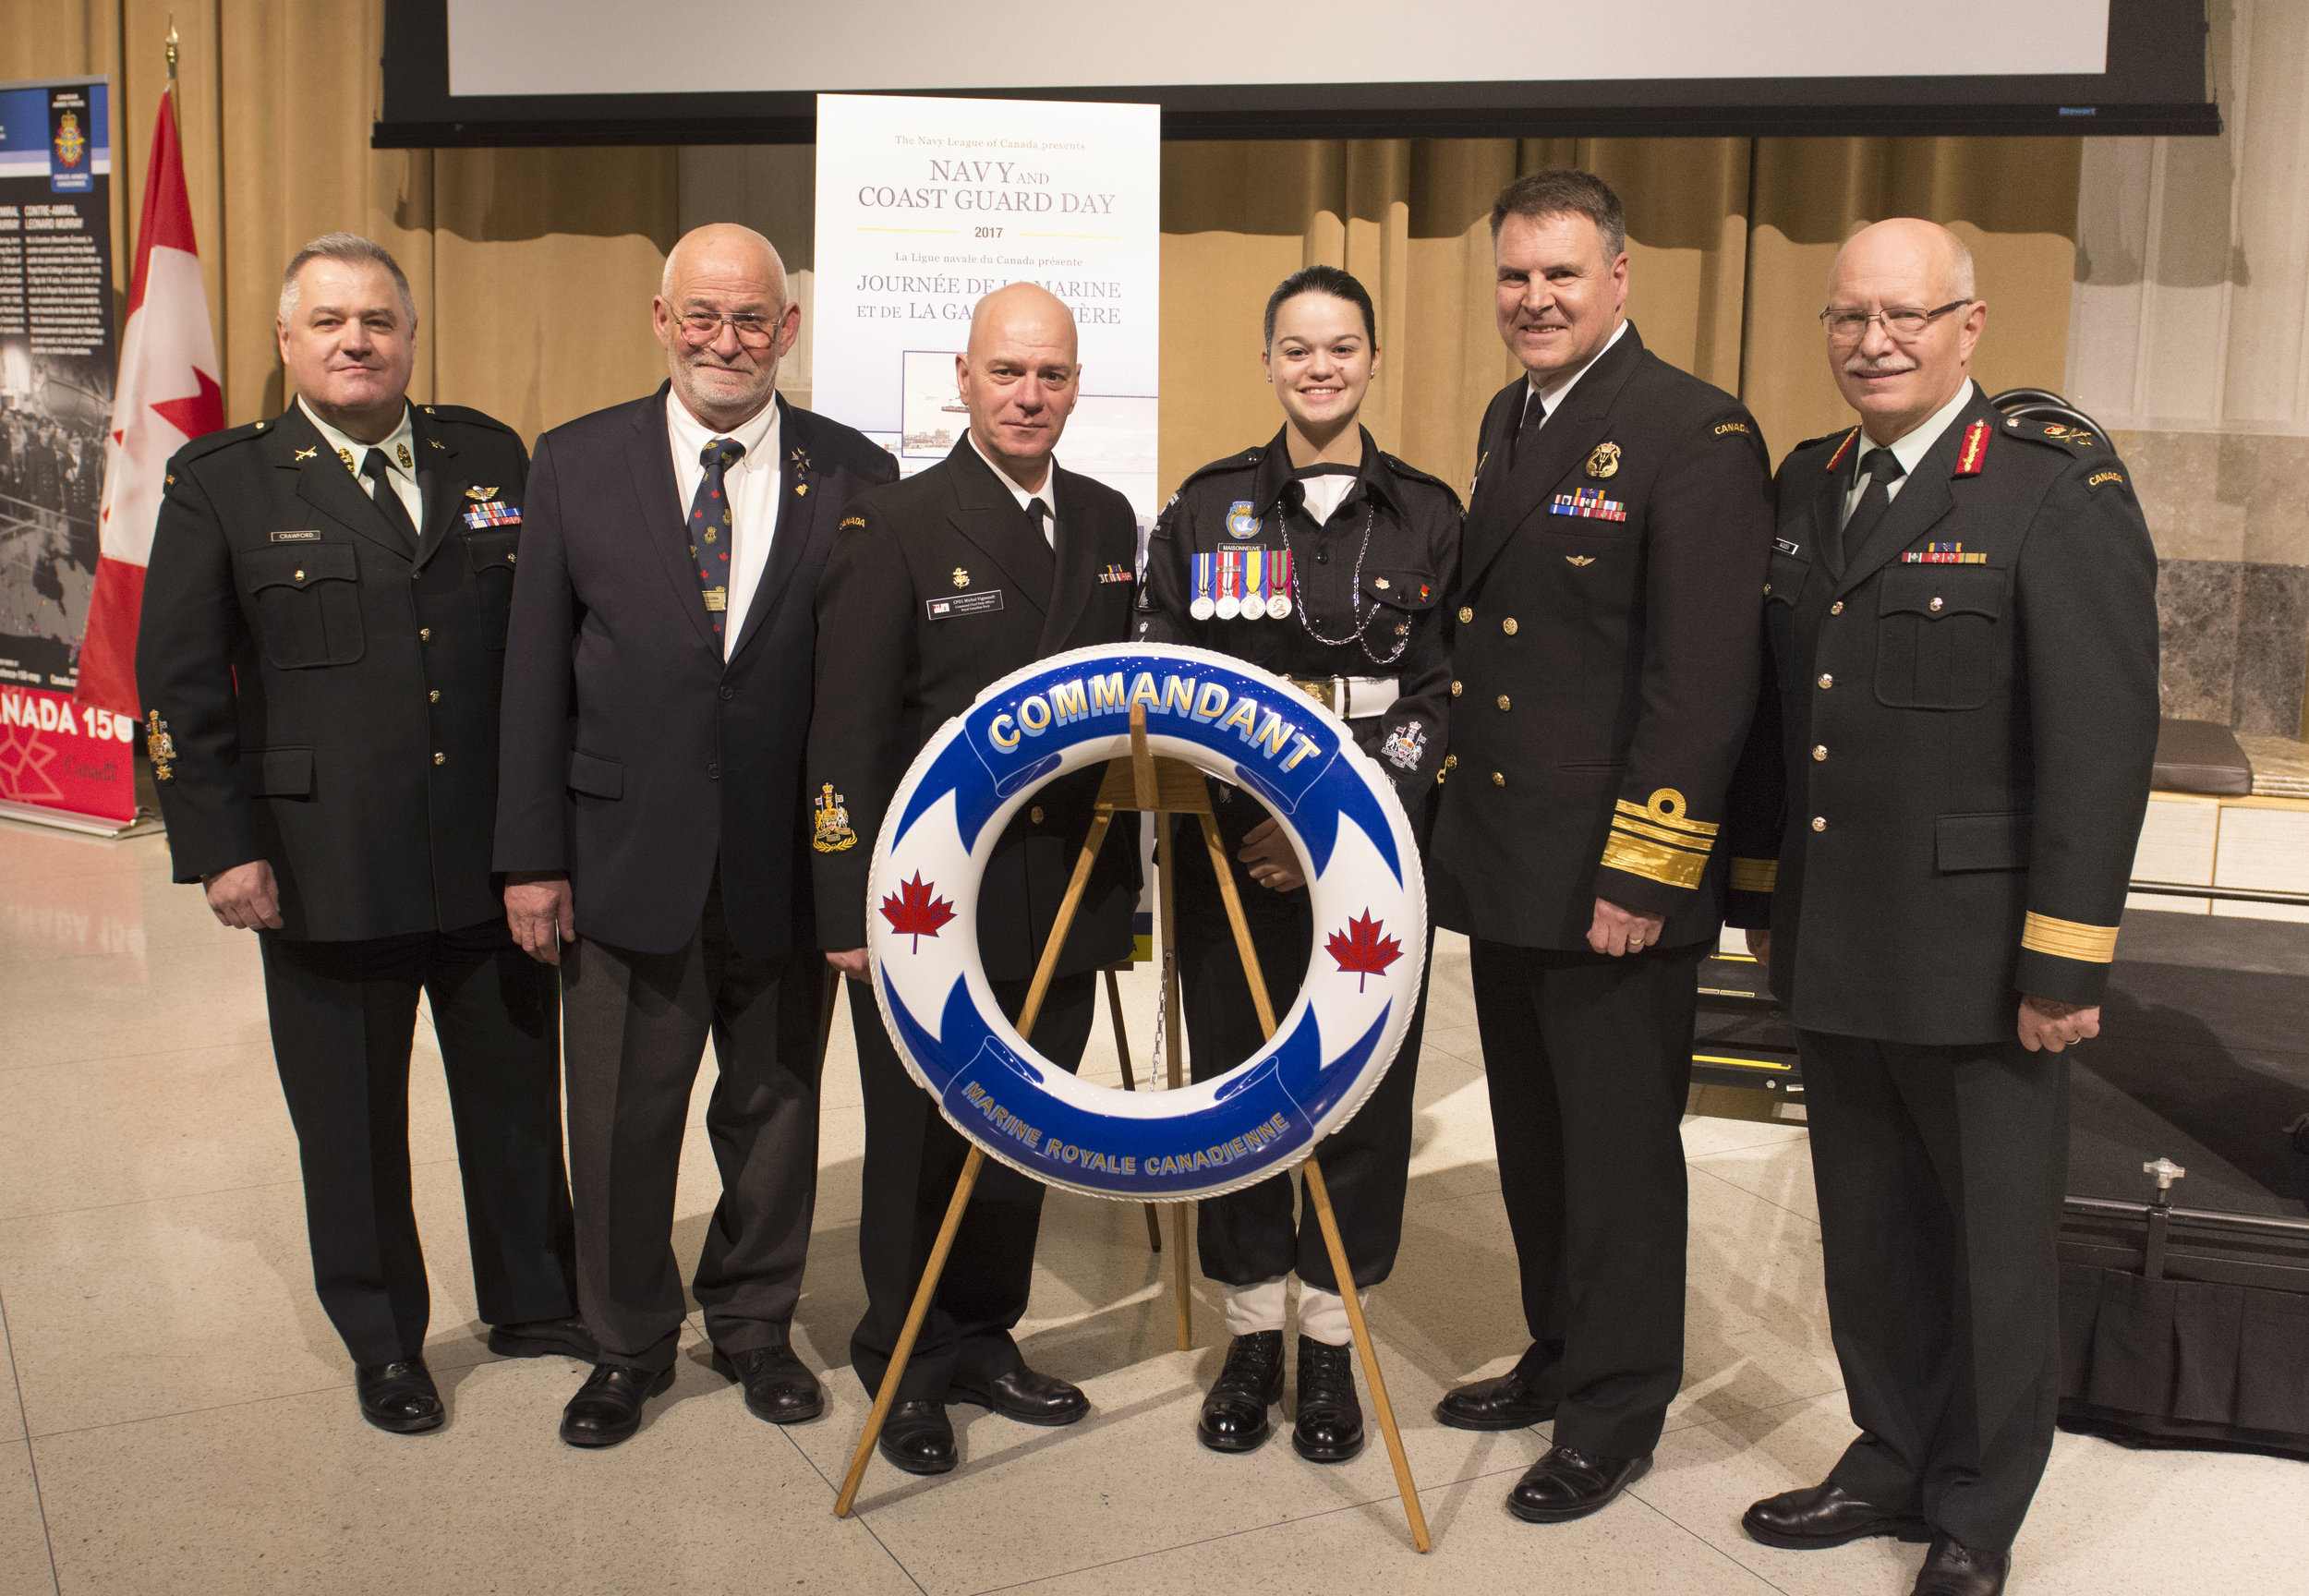 From left to right: Chief Warrant Officer Bill Crawford, Earle Corn, Chief Petty Officer of the Navy Michel Vigneault, Chief Petty Officer First Class Maude Maisonneuve, Vice-Admiral Ron Lloyd and Brigadier-General Kelly Woiden after the official presentation of the Sea Cadet Centennial Pin during the Navy and Coast Guard Day in Ottawa on November 21, 2017. On this day, and in honour of her title of Sea Cadet of the Year, CPO 1 Maisonneuve was the only youth in attendance. (mcpl pierre habib, dnd)